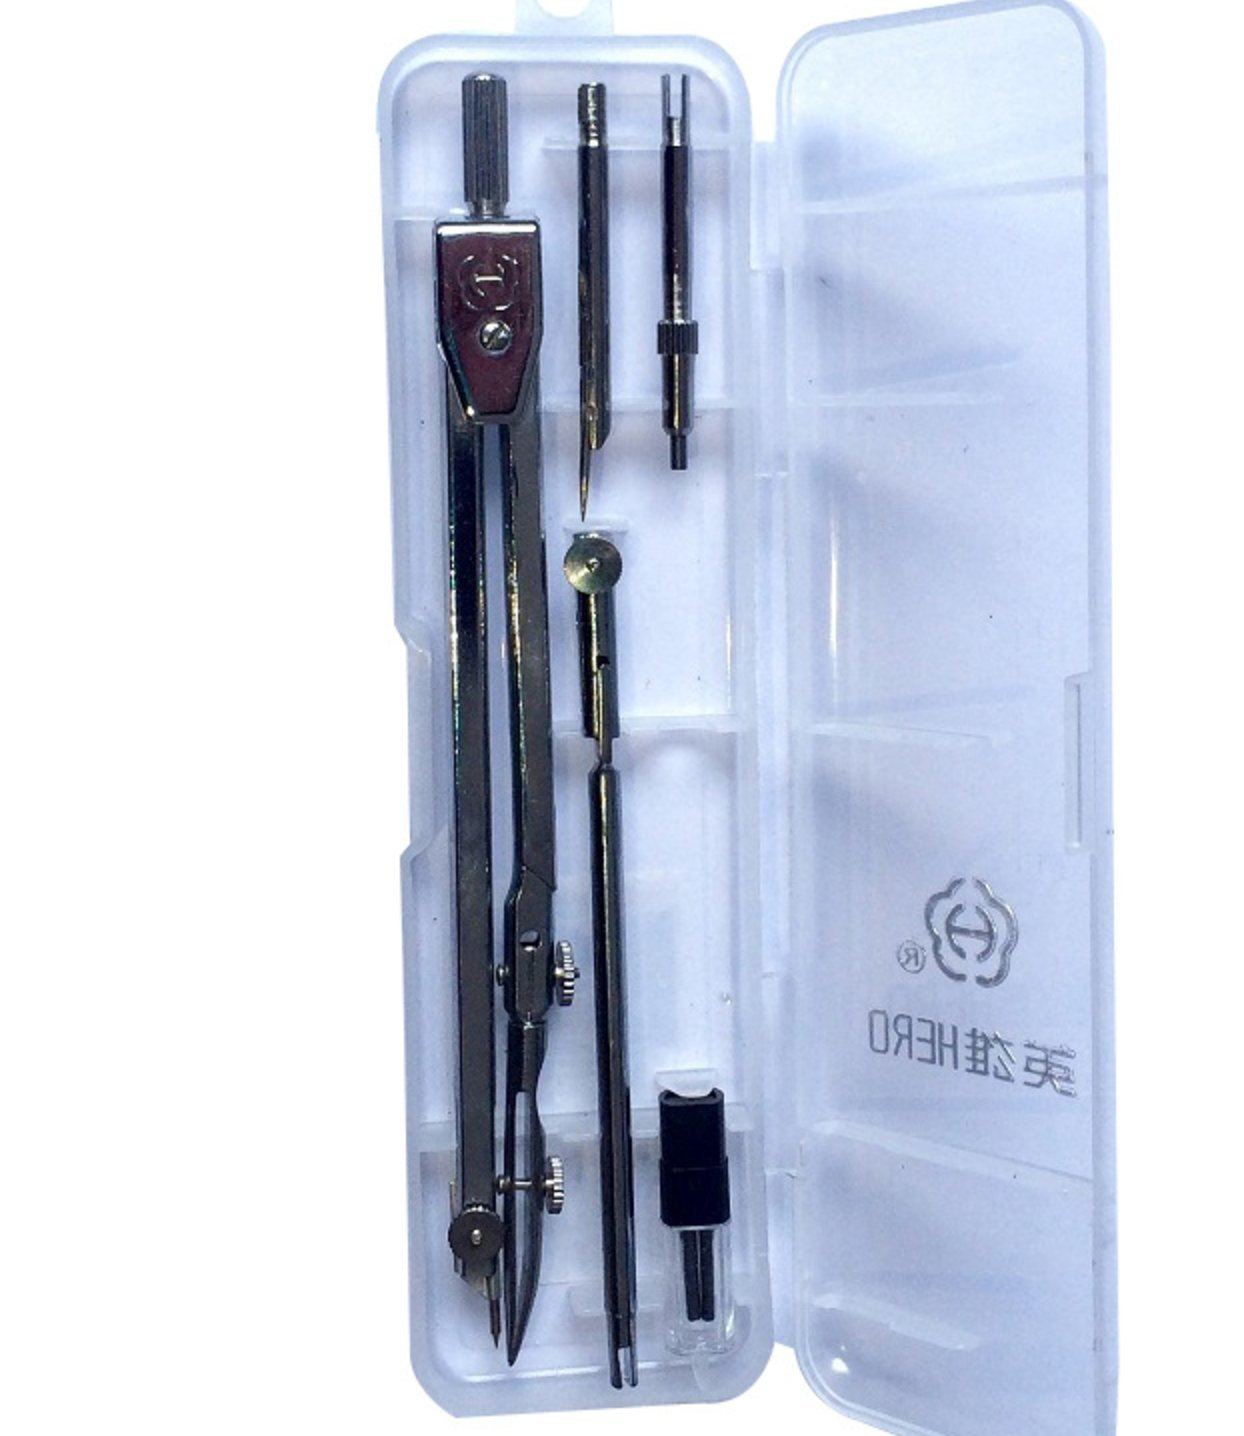 Grekywin Drawing Compass Set, Stainless Steel Drawing Compass Math Geometry Tools for Circles.